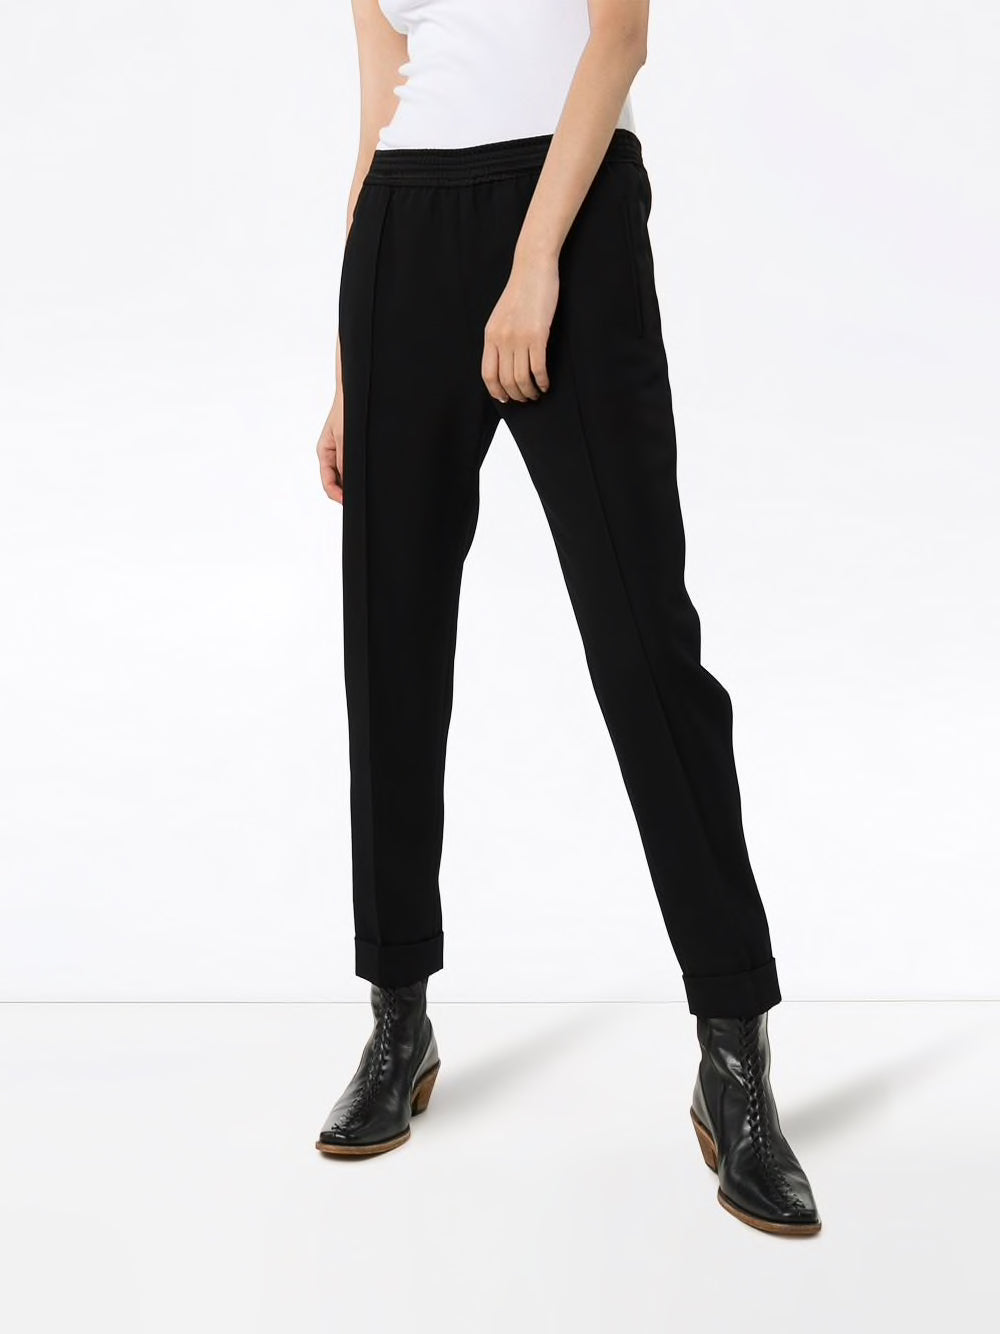 HAIDER ACKERMANN WOMEN ELASTIC WAISTBAND TROUSERS